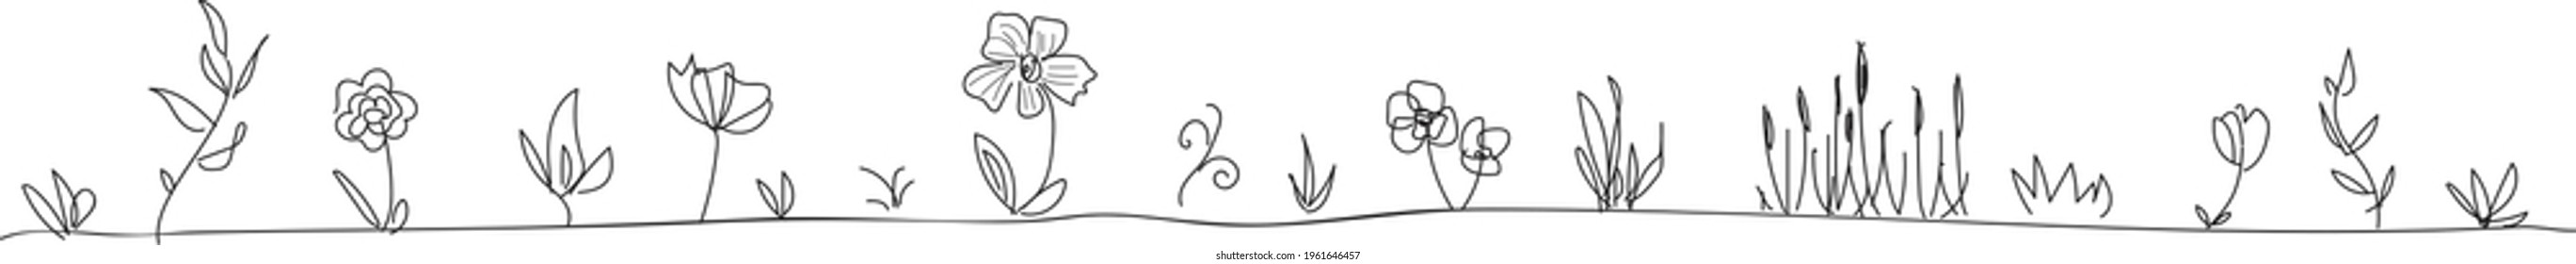 Hand drawn flower and branches divider in black and white, flora doodle vector divider, simple flora divider for wedding decoration, floral tattoo art, floral design border or footer